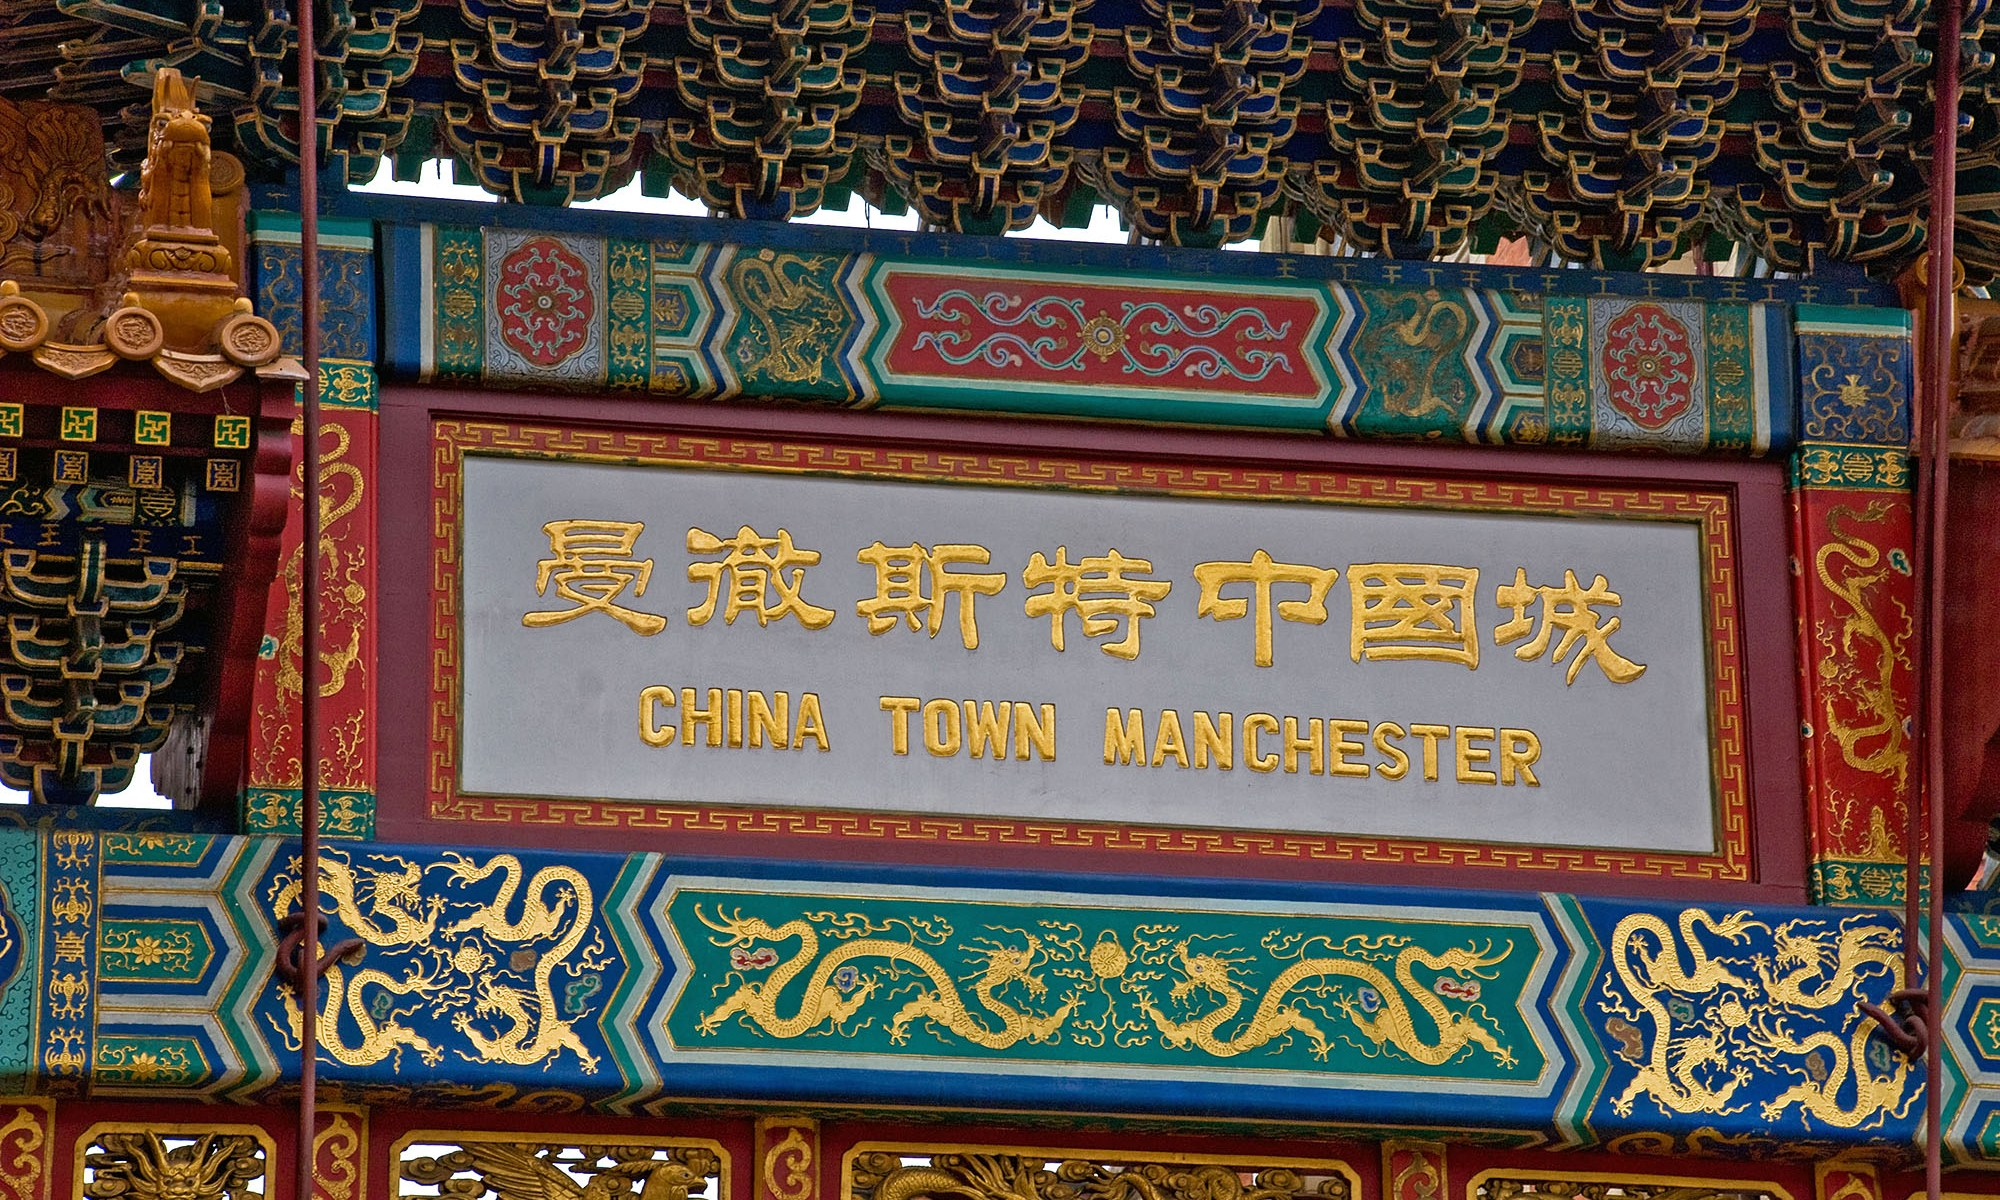 China Town, Manchester Archway Details